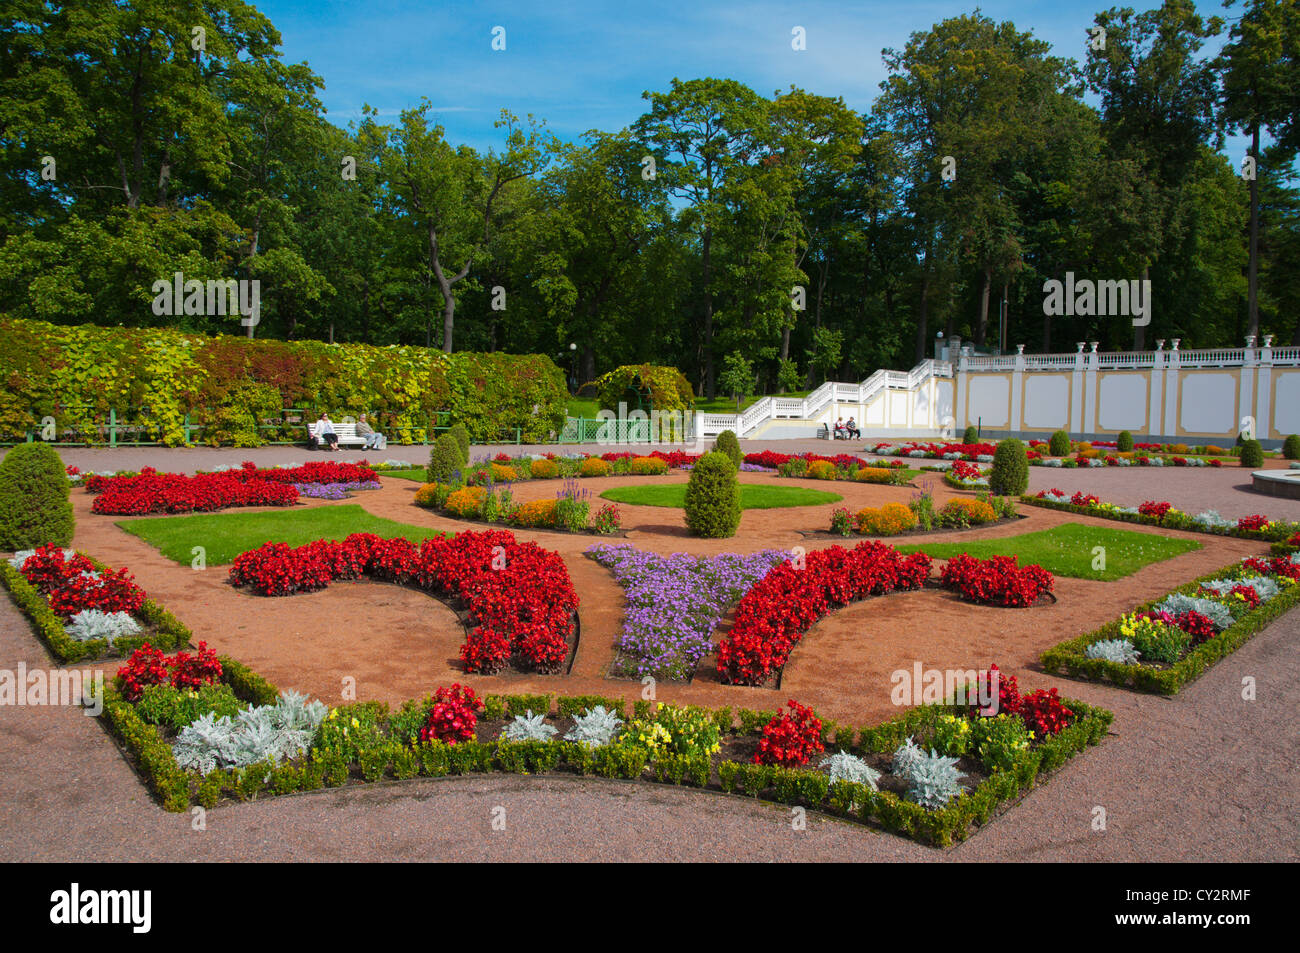 Flower garden of 18th century Baroque style Kadriorg Palace in Kadrioru park the Kadriorg park Tallinn Estonia Europe - Stock Image